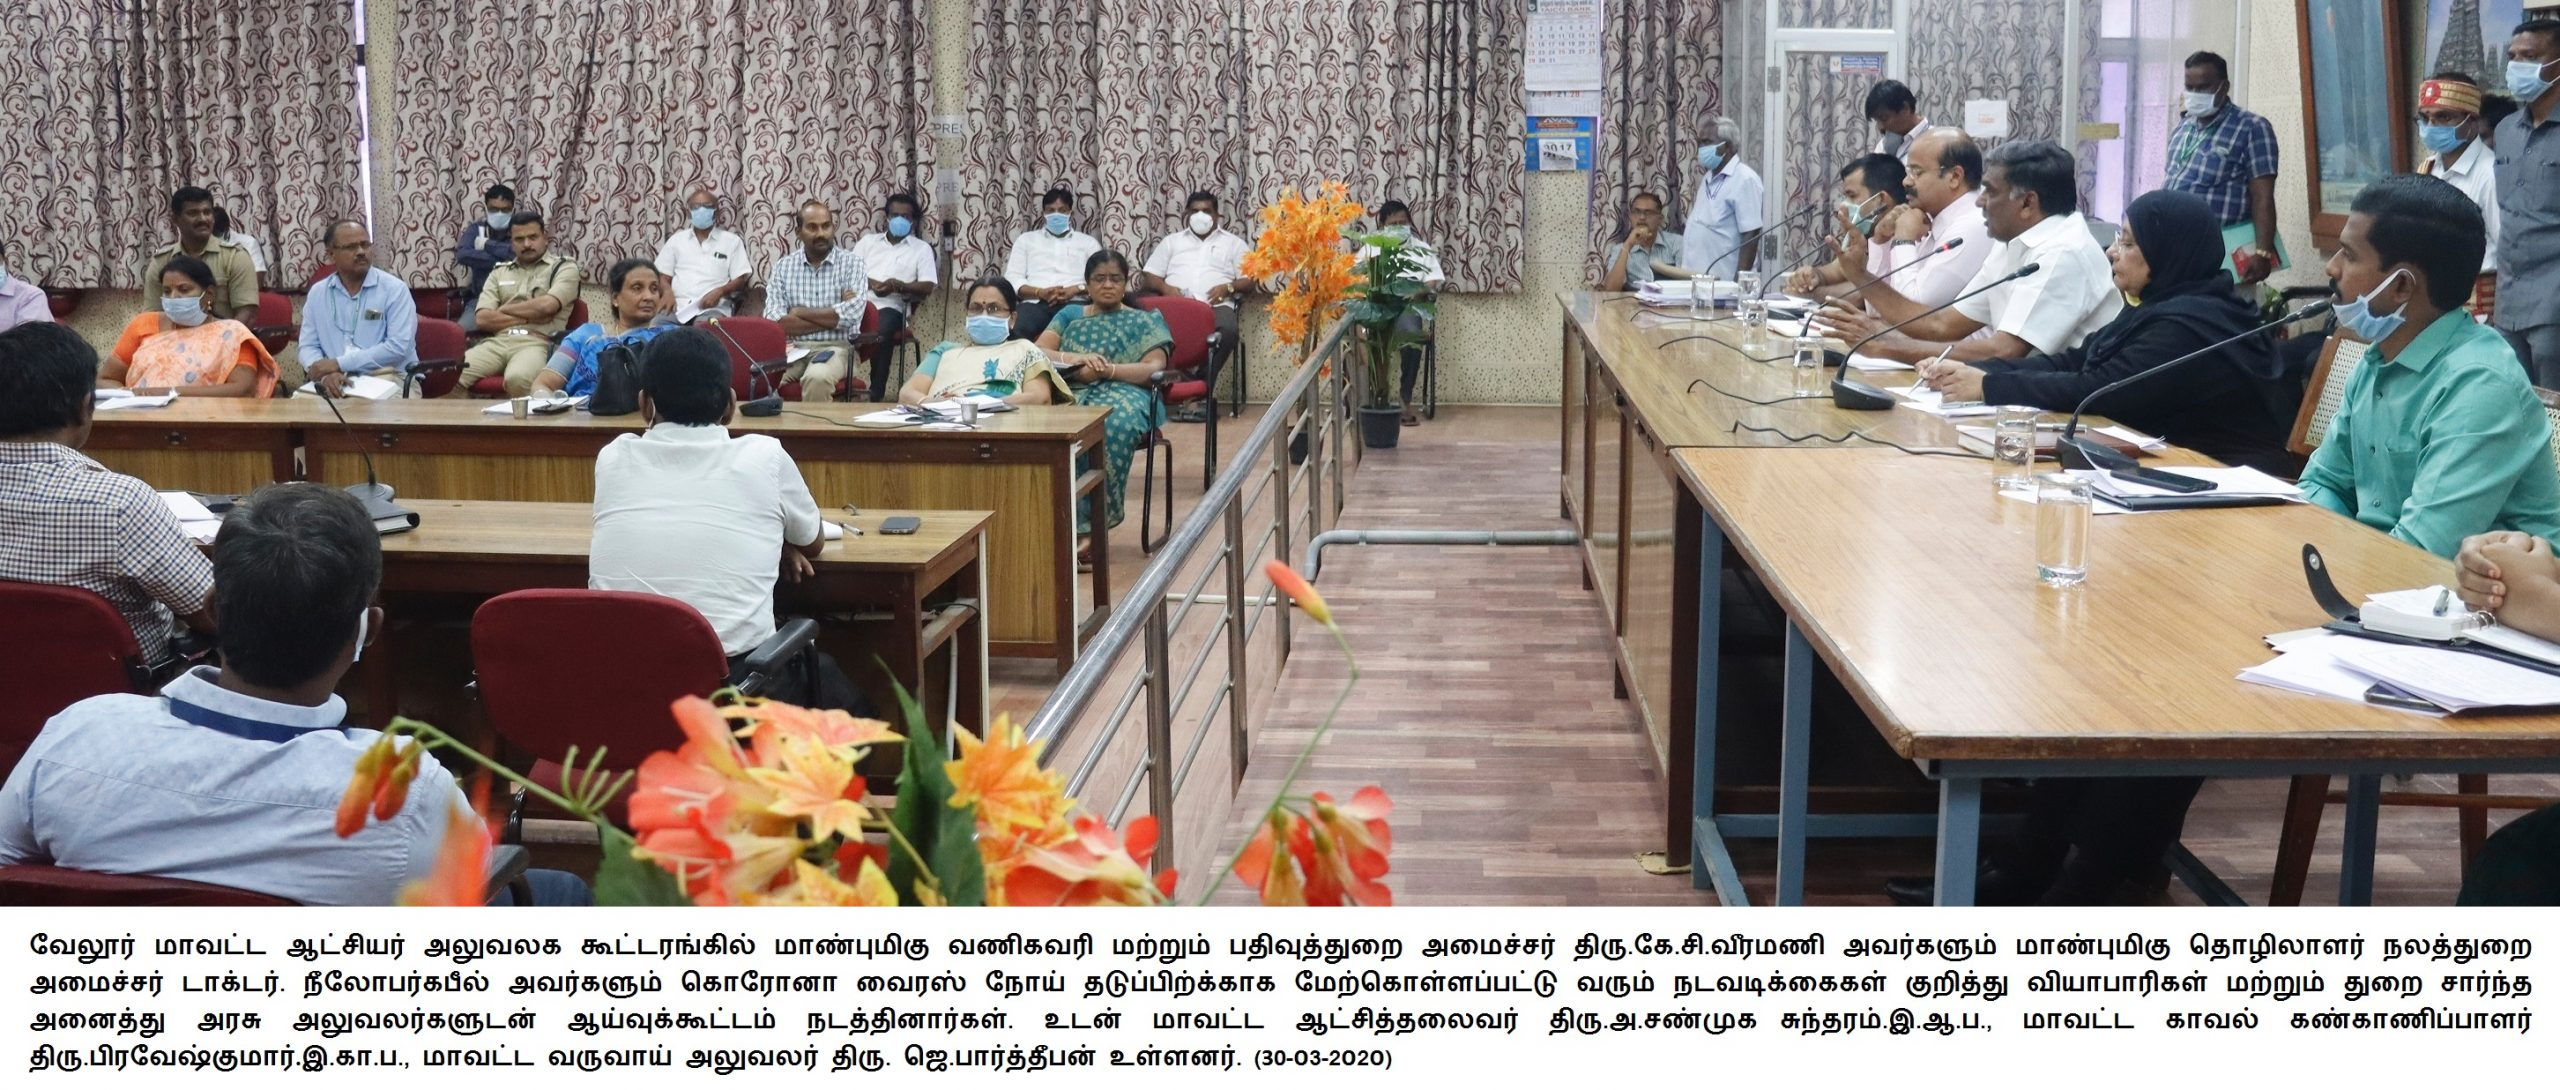 Honorable Commercial Tax and Registration Department Minister K.C.Veeramani Inspected Corona Virus Preventive Methods 30-03-2020